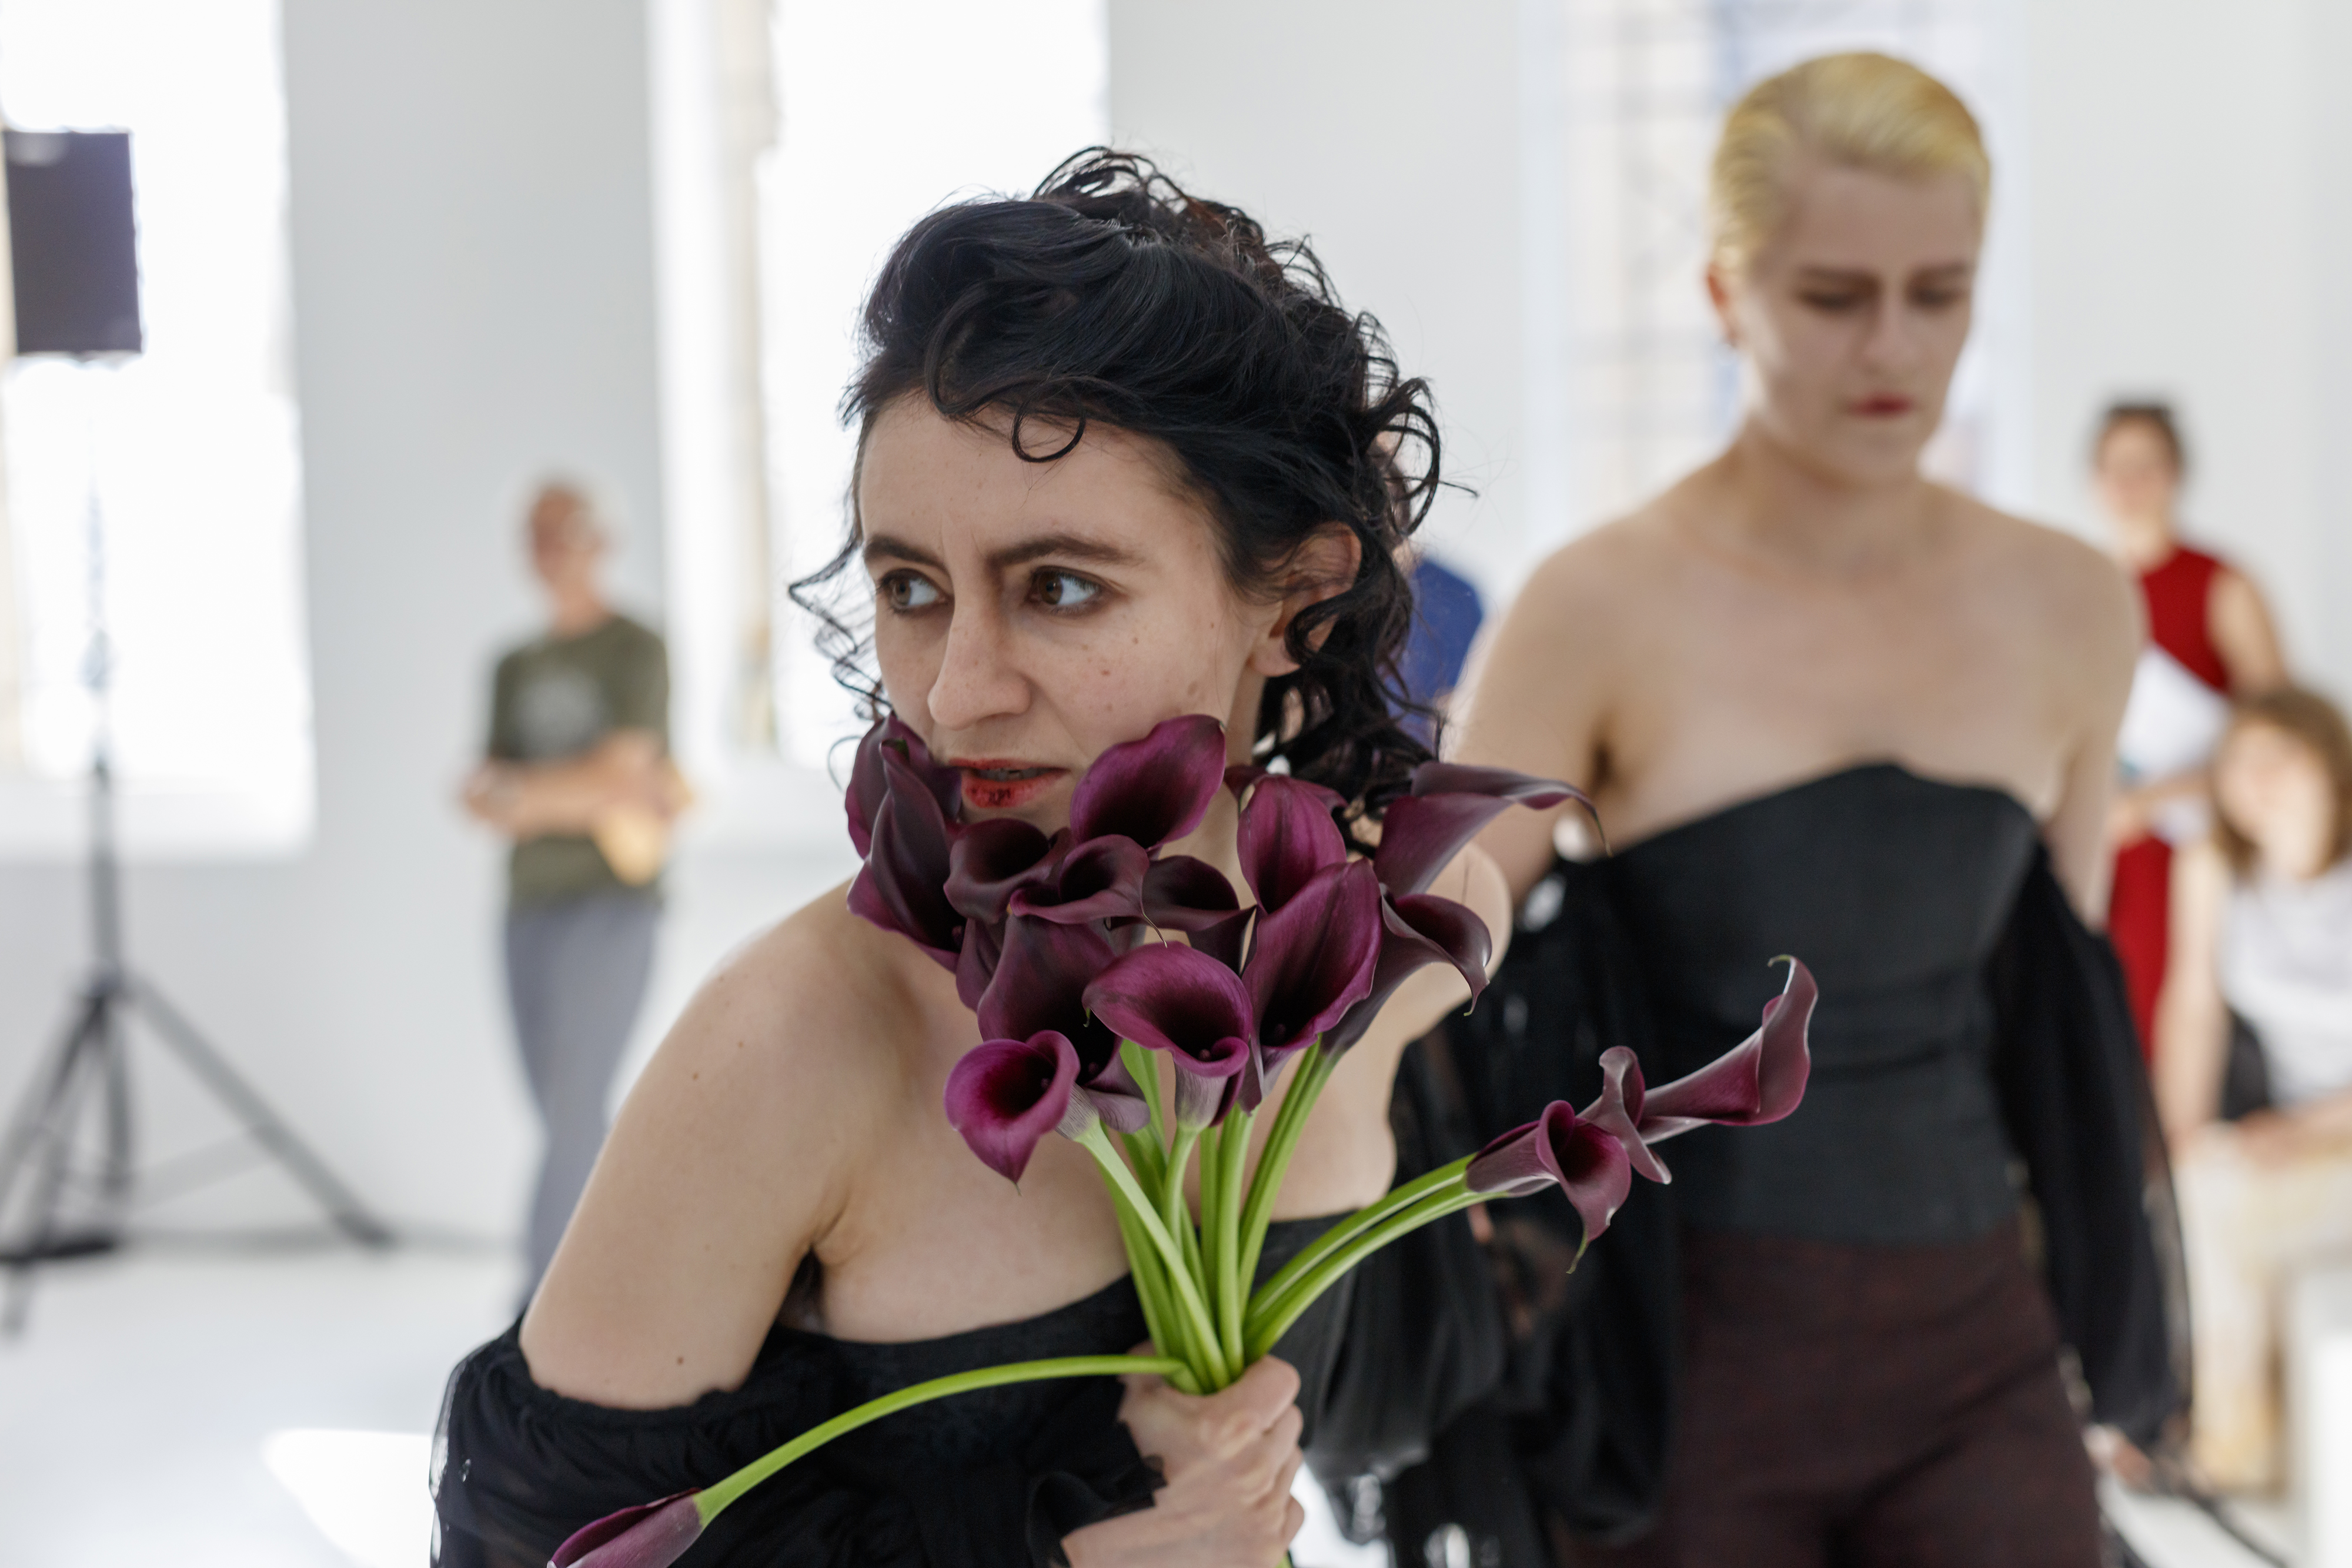 New Noveta, Alukah Abad, 2019 (featuring Vindicatrix, avec création de Miranda Keys et costumes par Xenab Lone), performance dans le cadre de l'exposition Digital Gothic, CAC-La synagogue de Delme, 2019. Photo: O.H. Dancy.